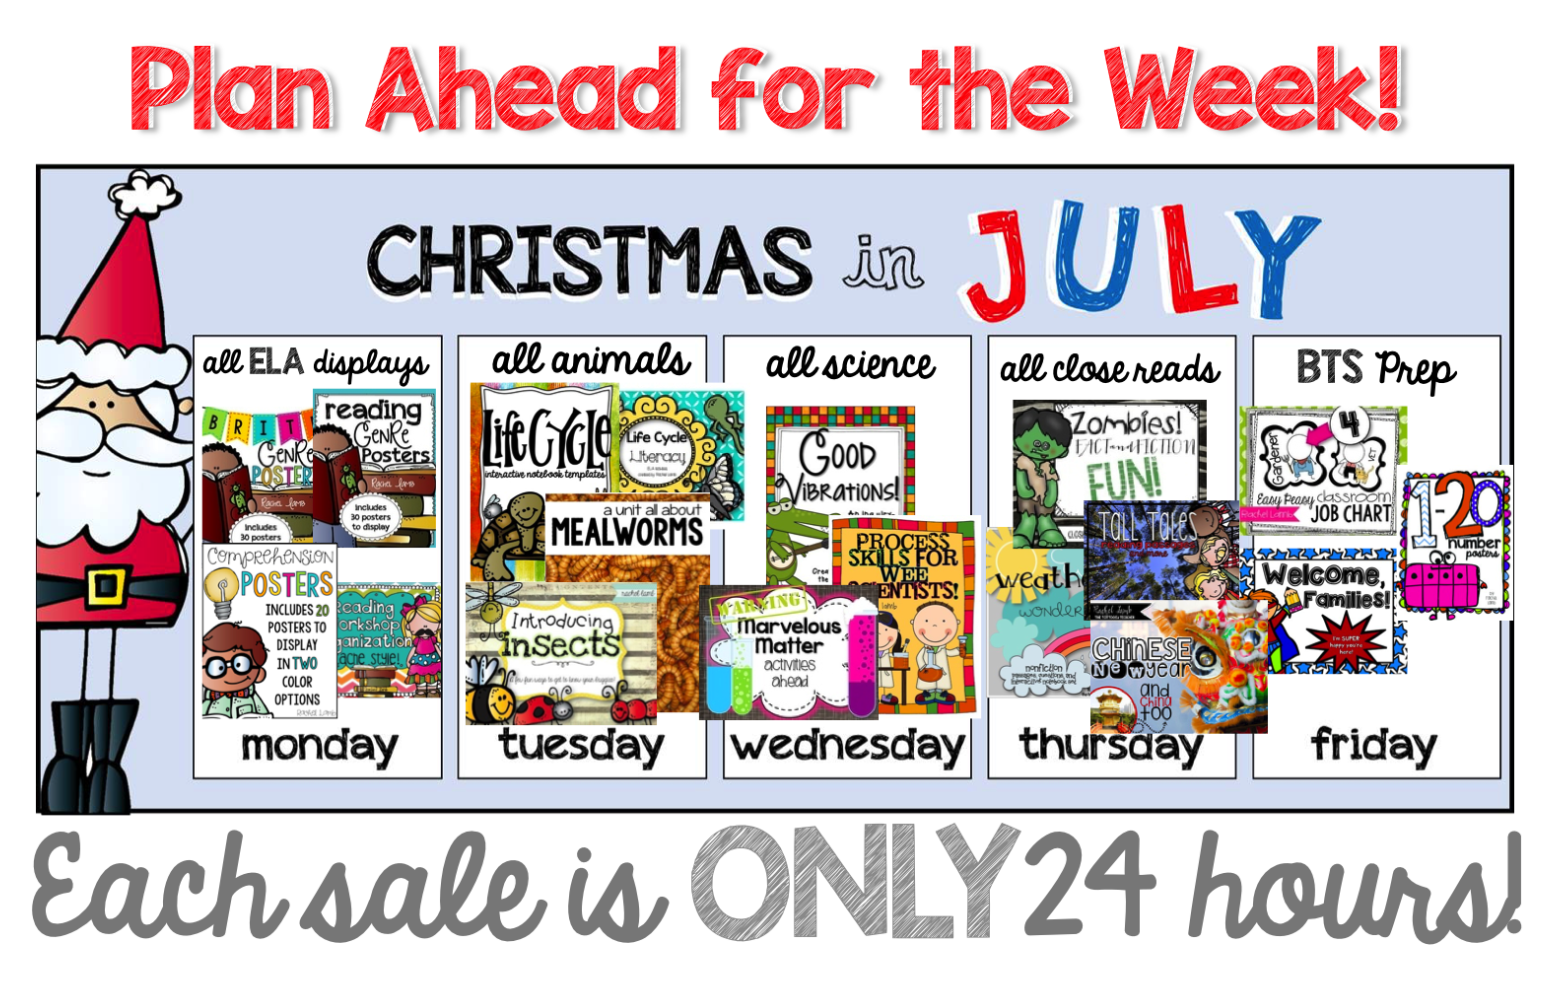 Christmas in july clipart banner free stock Christmas In July! Day 1: All Things ELA! - the tattooed teacher banner free stock